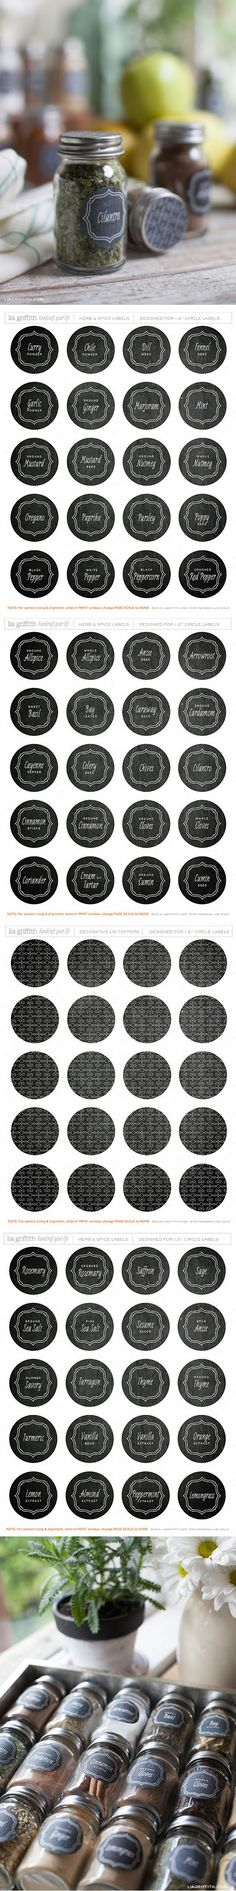 Free Printable Round Herb Spice Labels - used these today to spruce up my spice bottles - these are so cute with their faux-chalkboard paint look! This set has one of the biggest varieties of spice names that I've seen in a free set! Printable Labels, Free Printables, Printable Vintage, Spice Bottles, Spice Jars, Spice Labels, Food Labels, Etiquette Vintage, Spice Organization